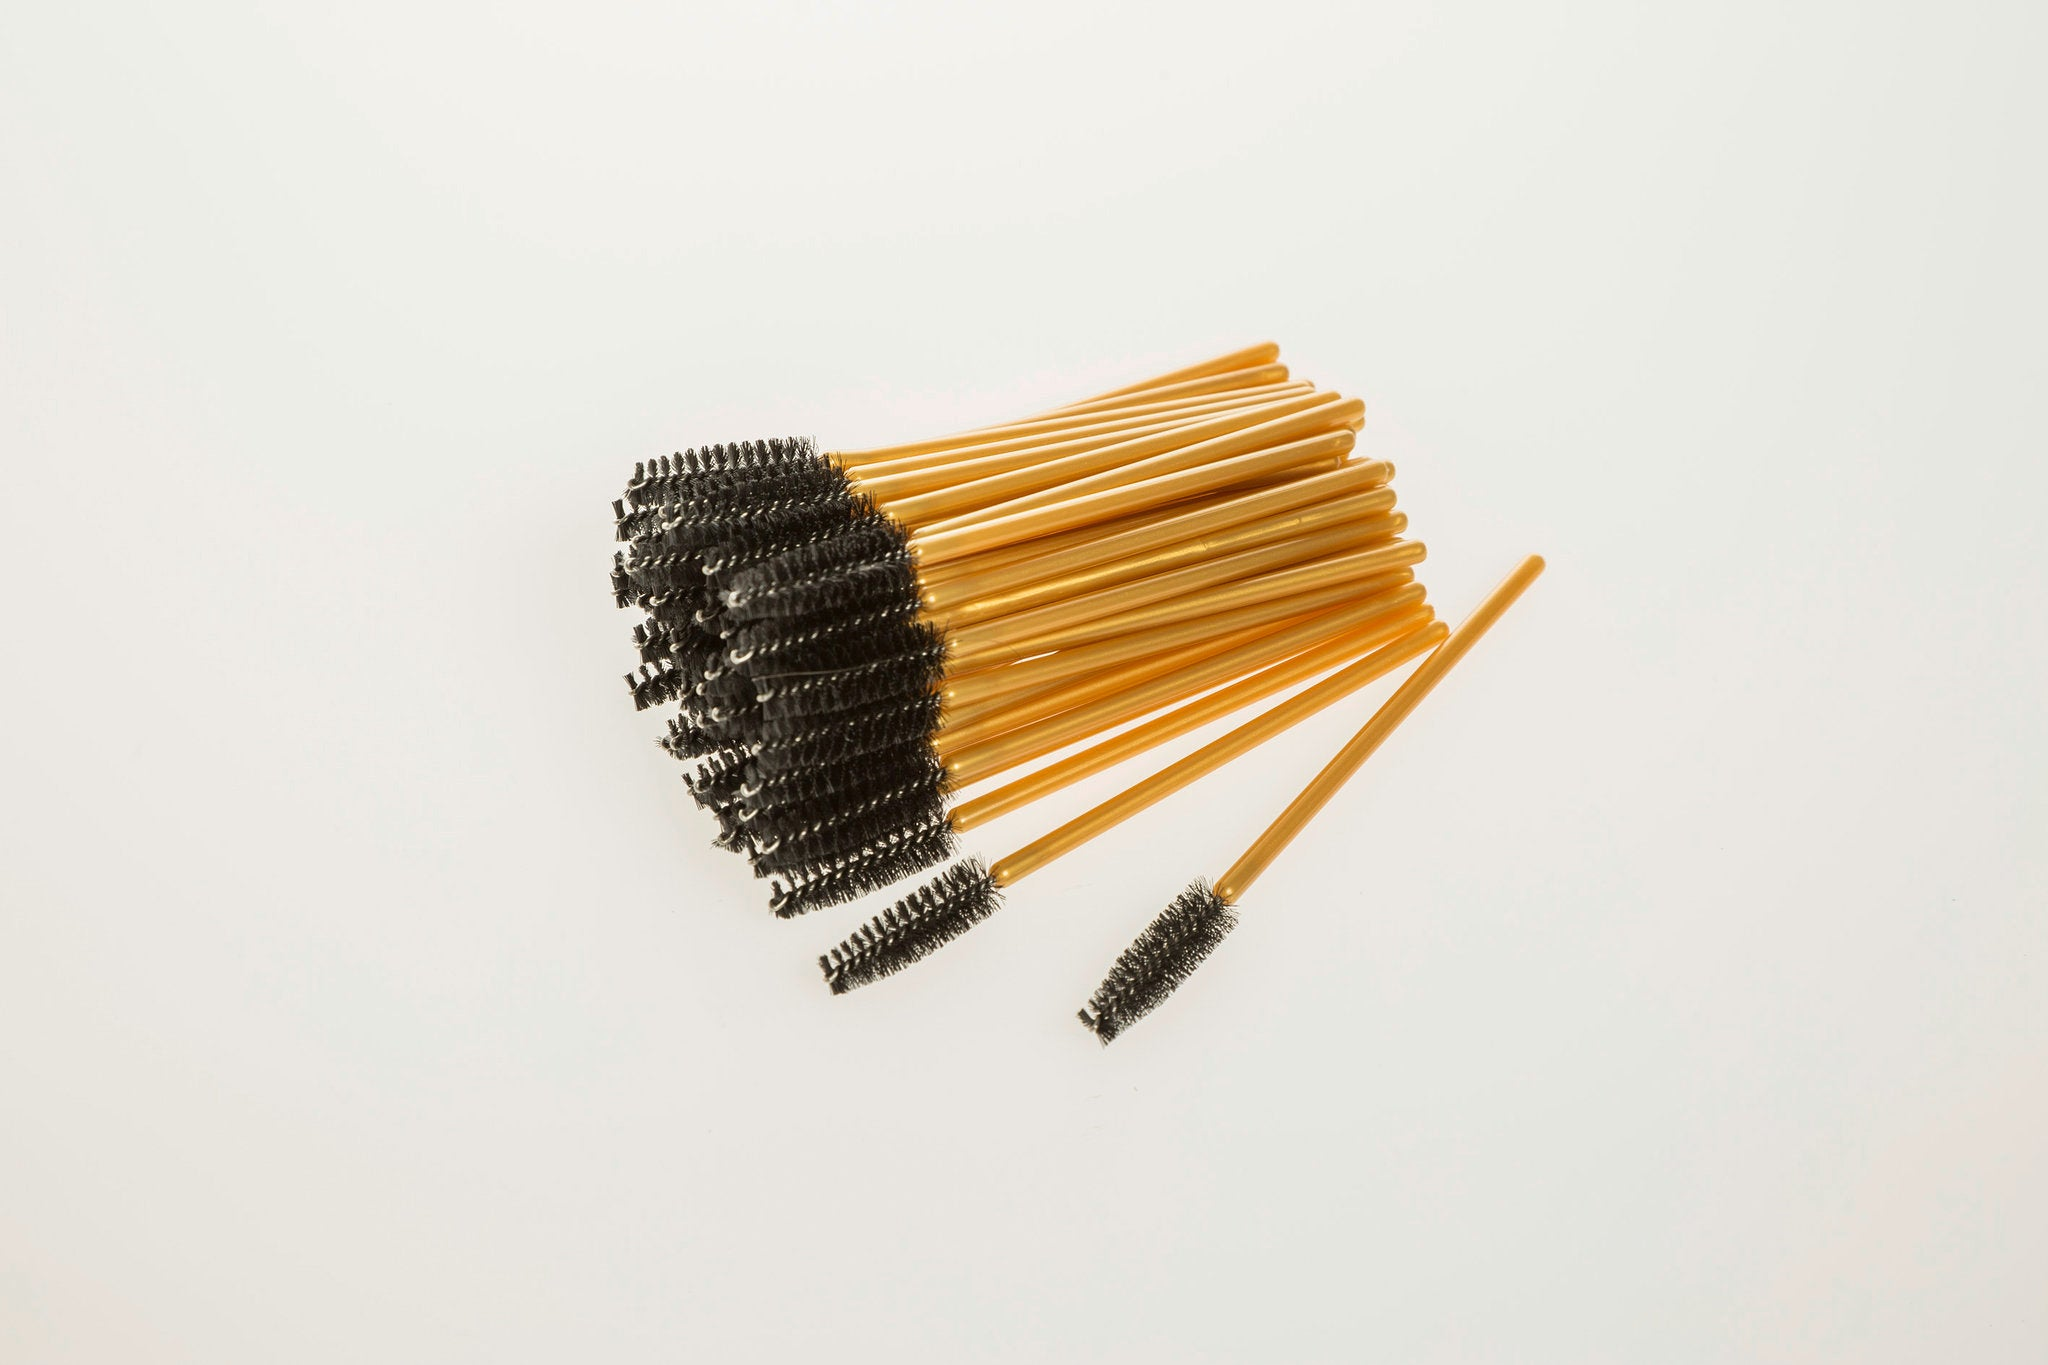 Gold Lash Brushes Pack of 50 - Prestige Lash Art